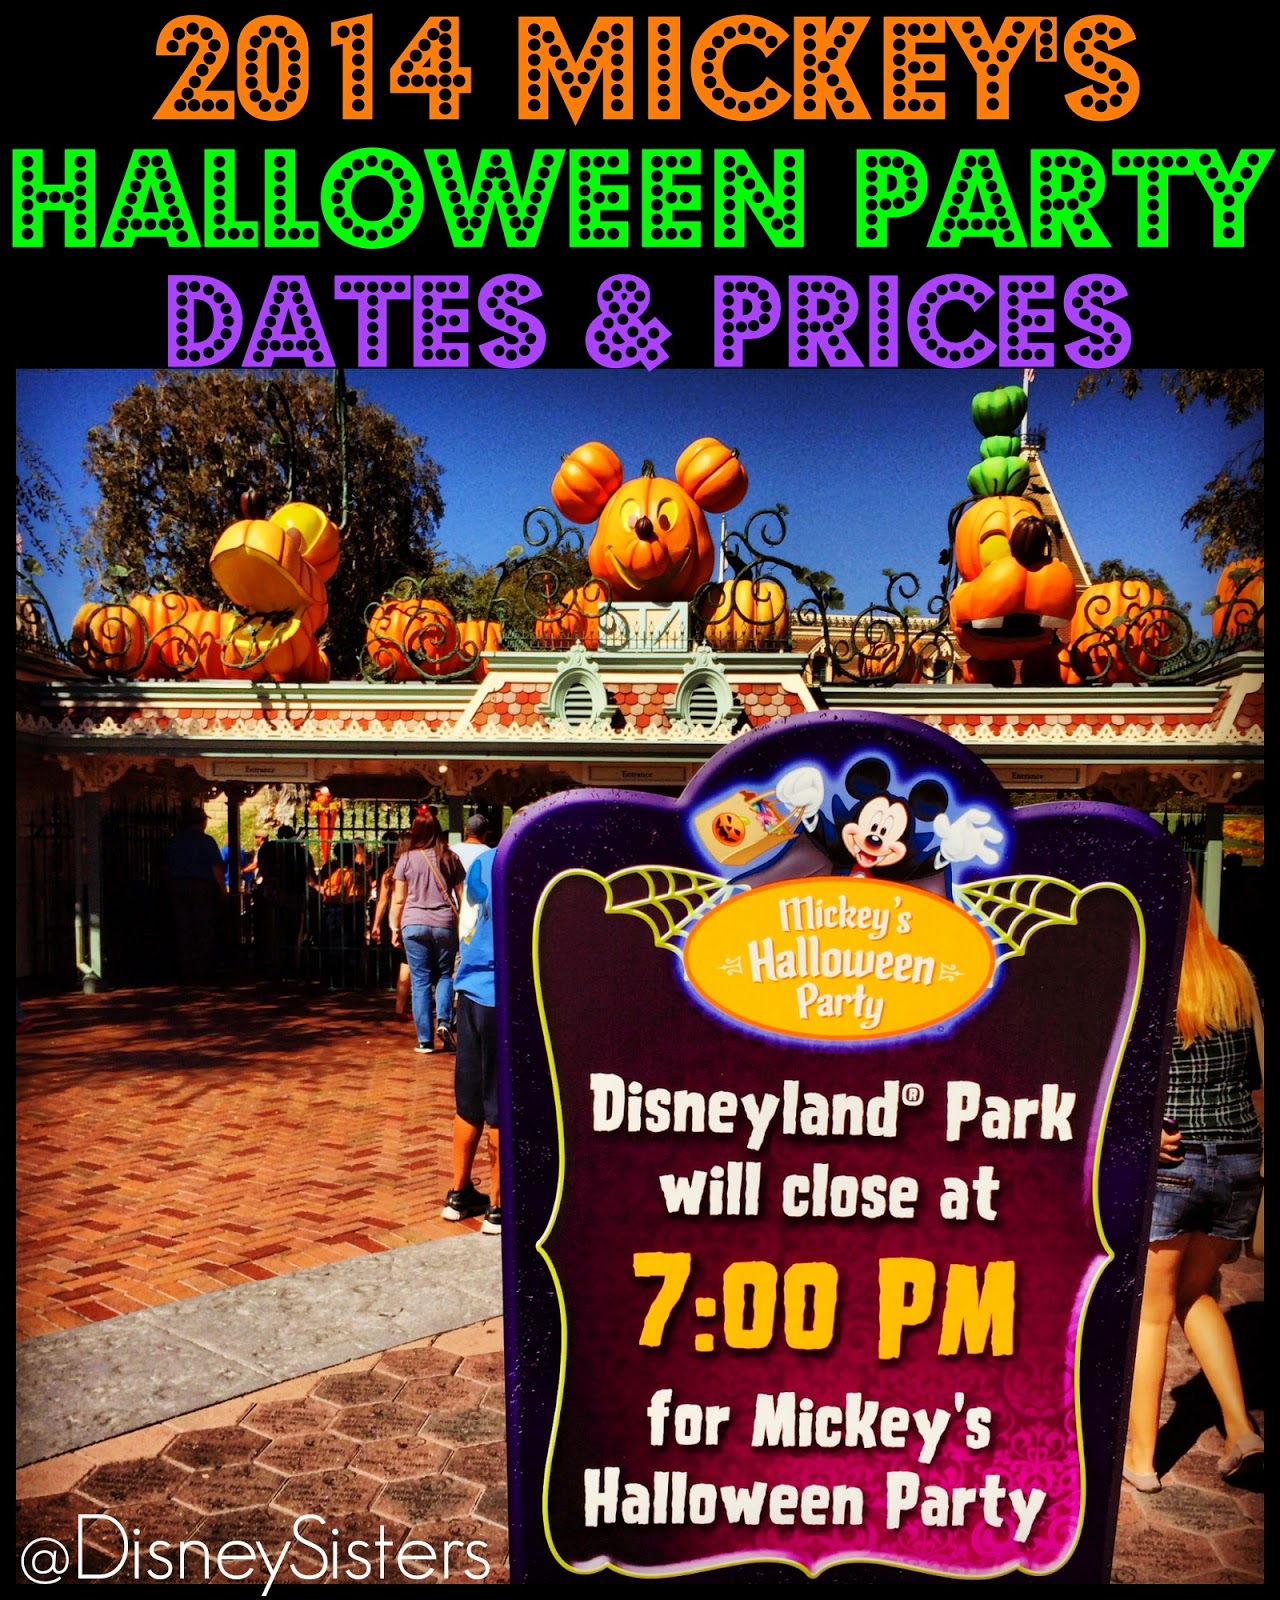 Disney Sisters: 2014 Mickey's Halloween Party Dates and Ticket Prices